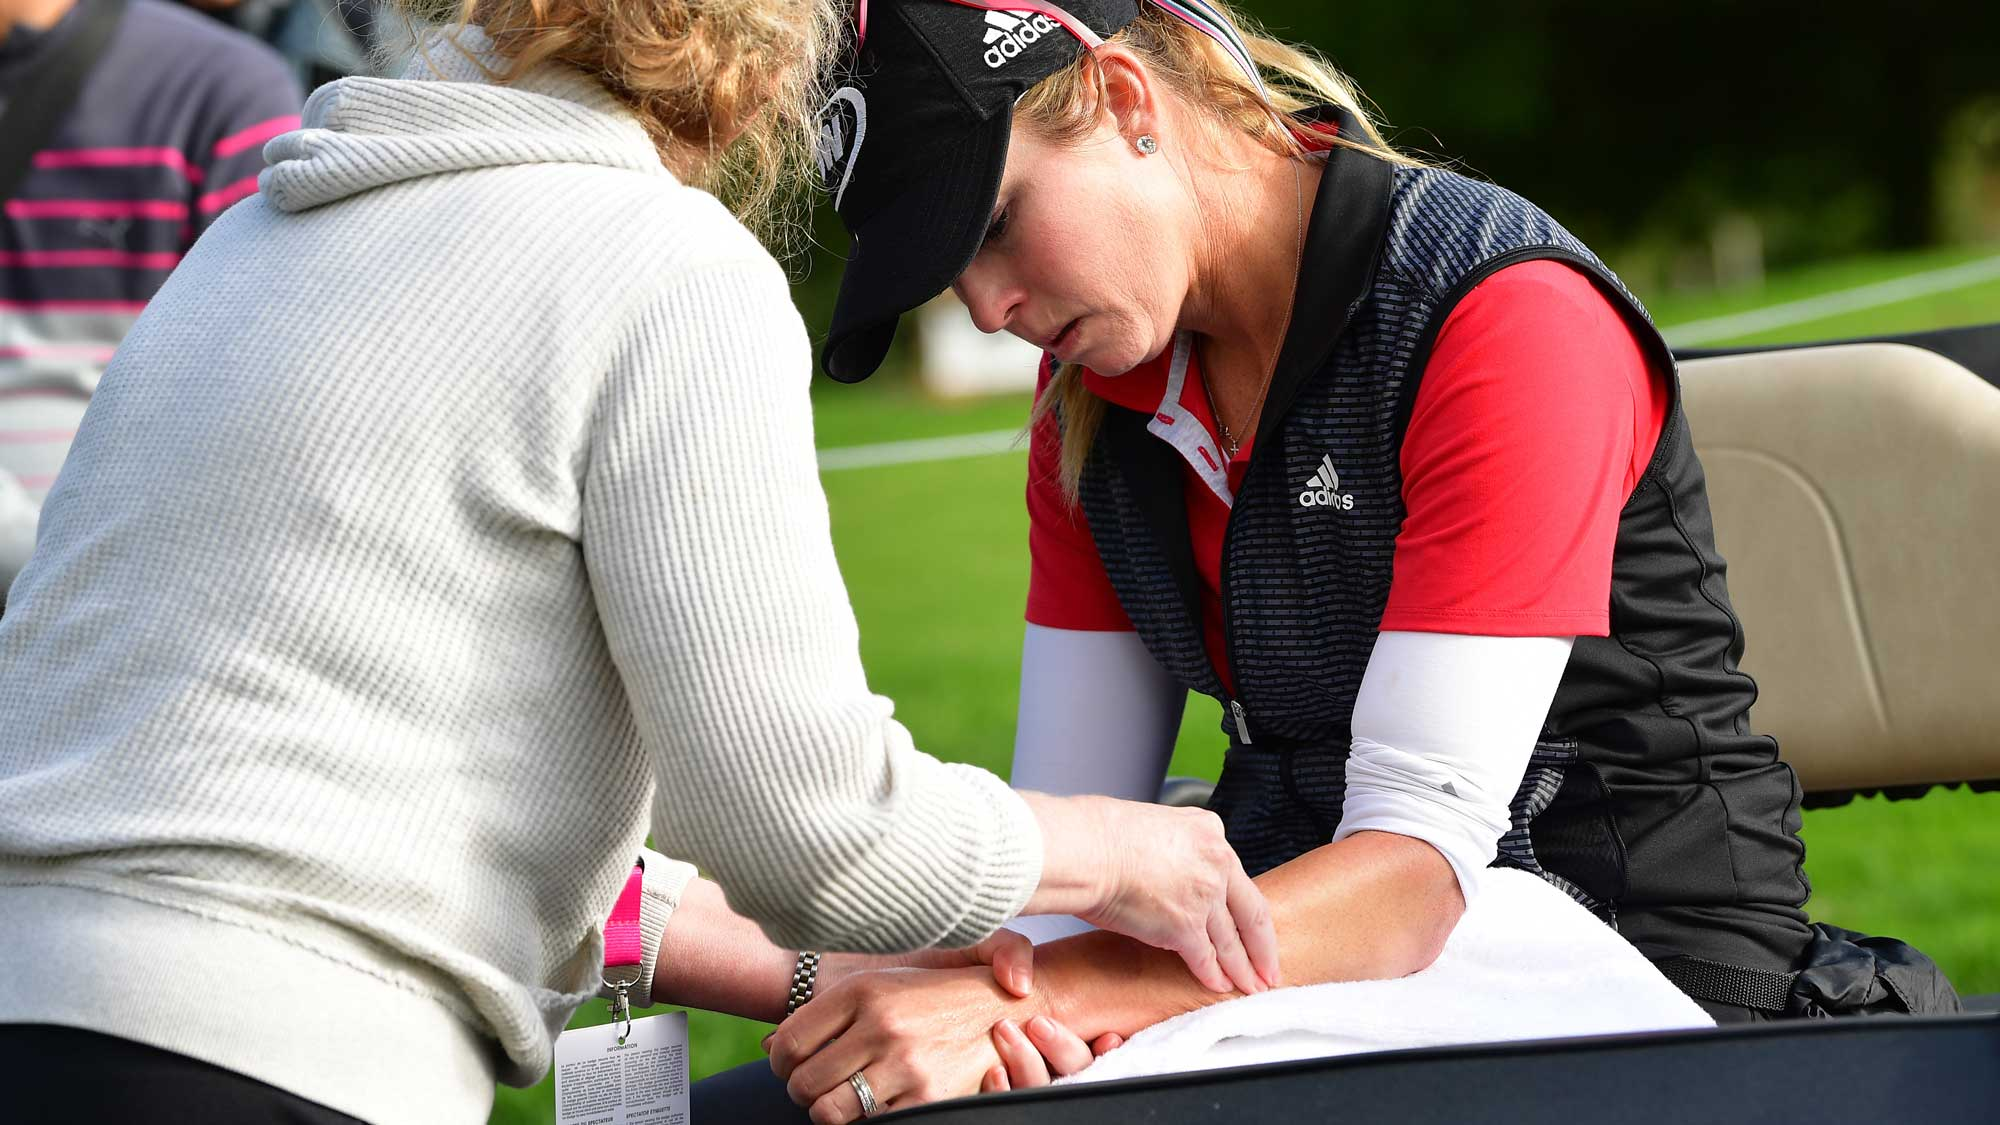 Paula Creamer of USA gets physio treatment for her sprained wrist during the weather delayed first round of The Evian Championship at Evian Resort Golf Club on September 15, 2017 in Evian-les-Bains, France.